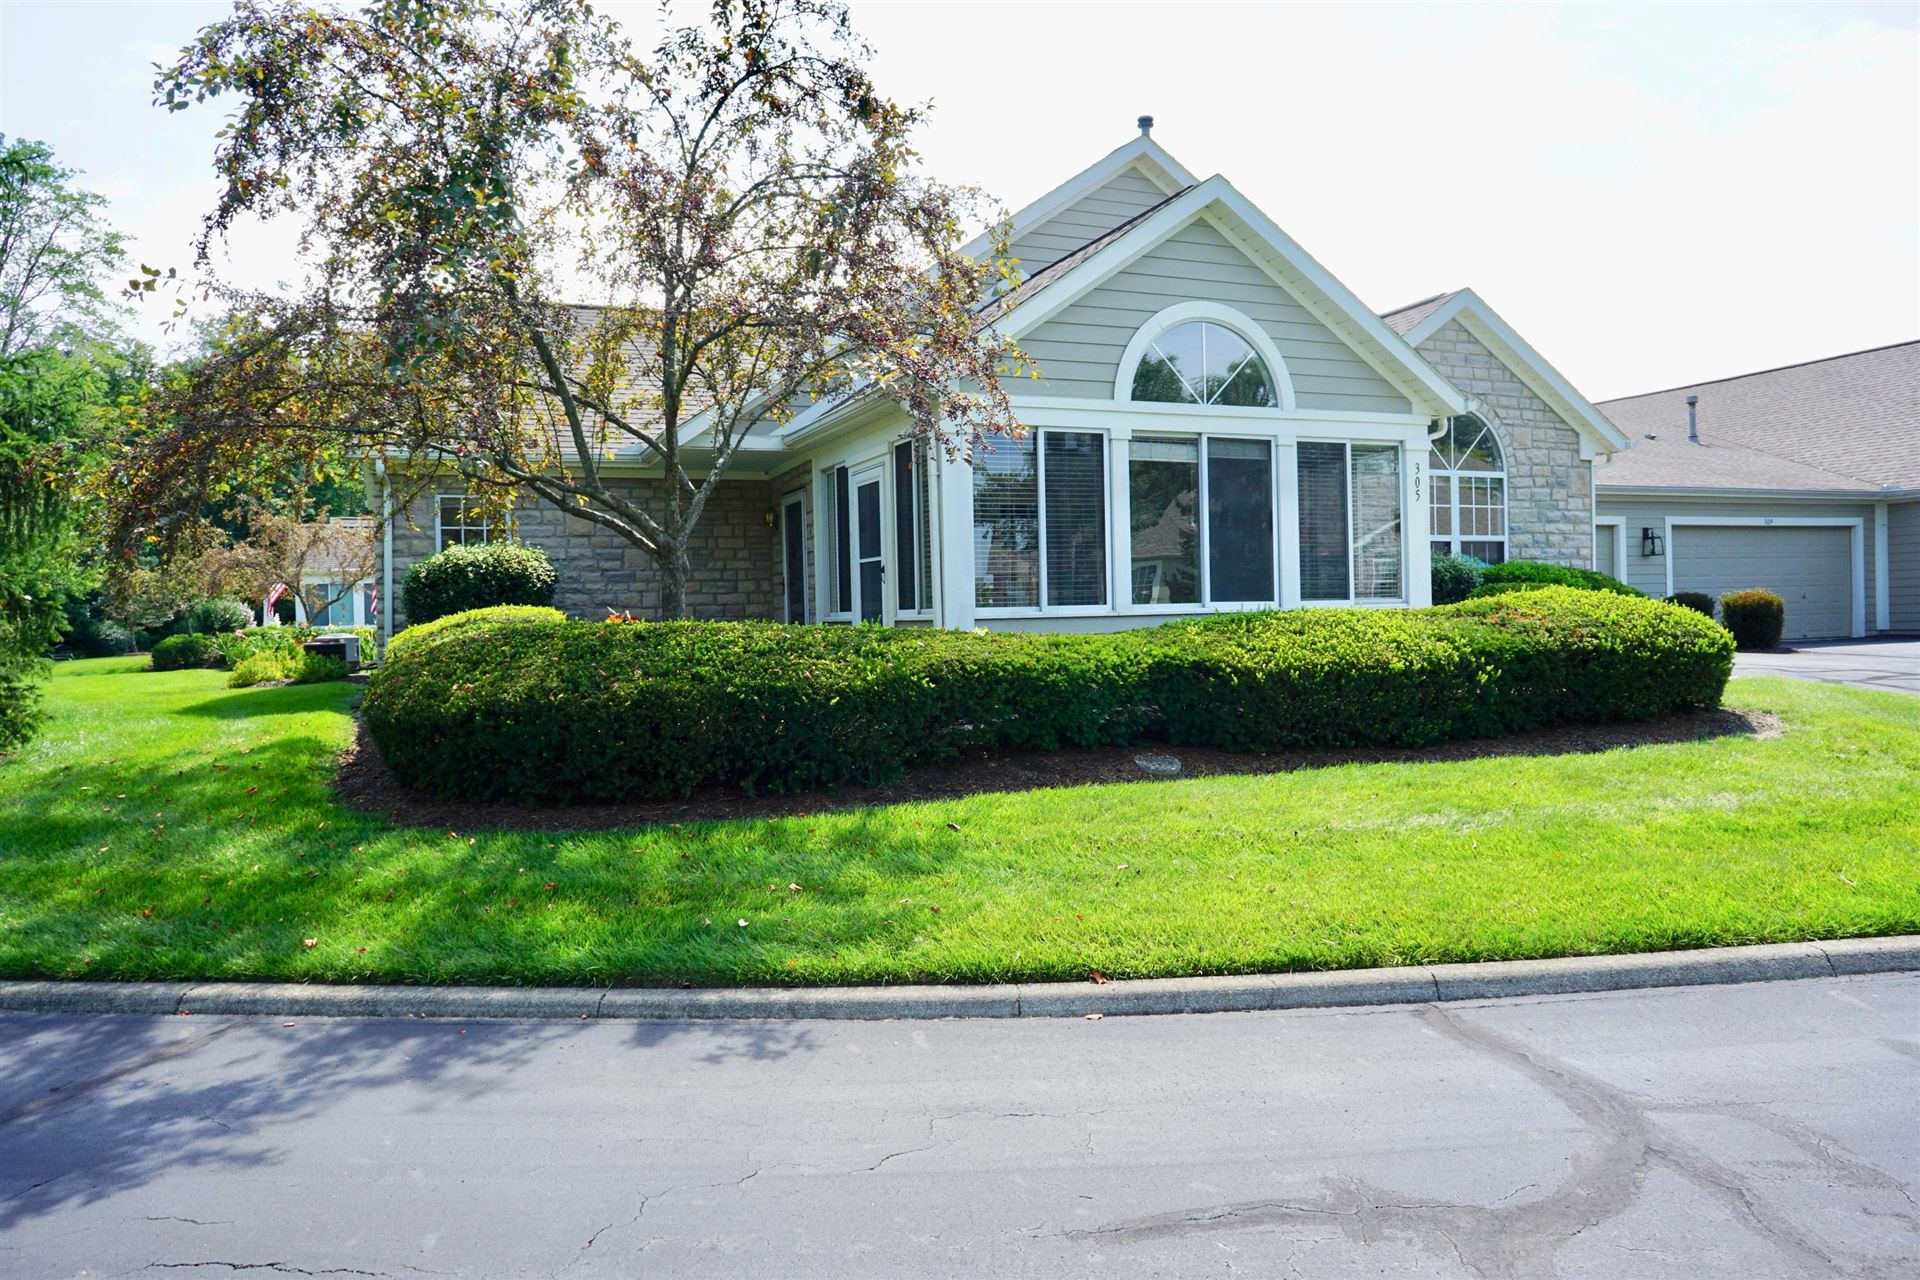 Photo of 305 Park Woods Lane, Powell, OH 43065 (MLS # 221028087)